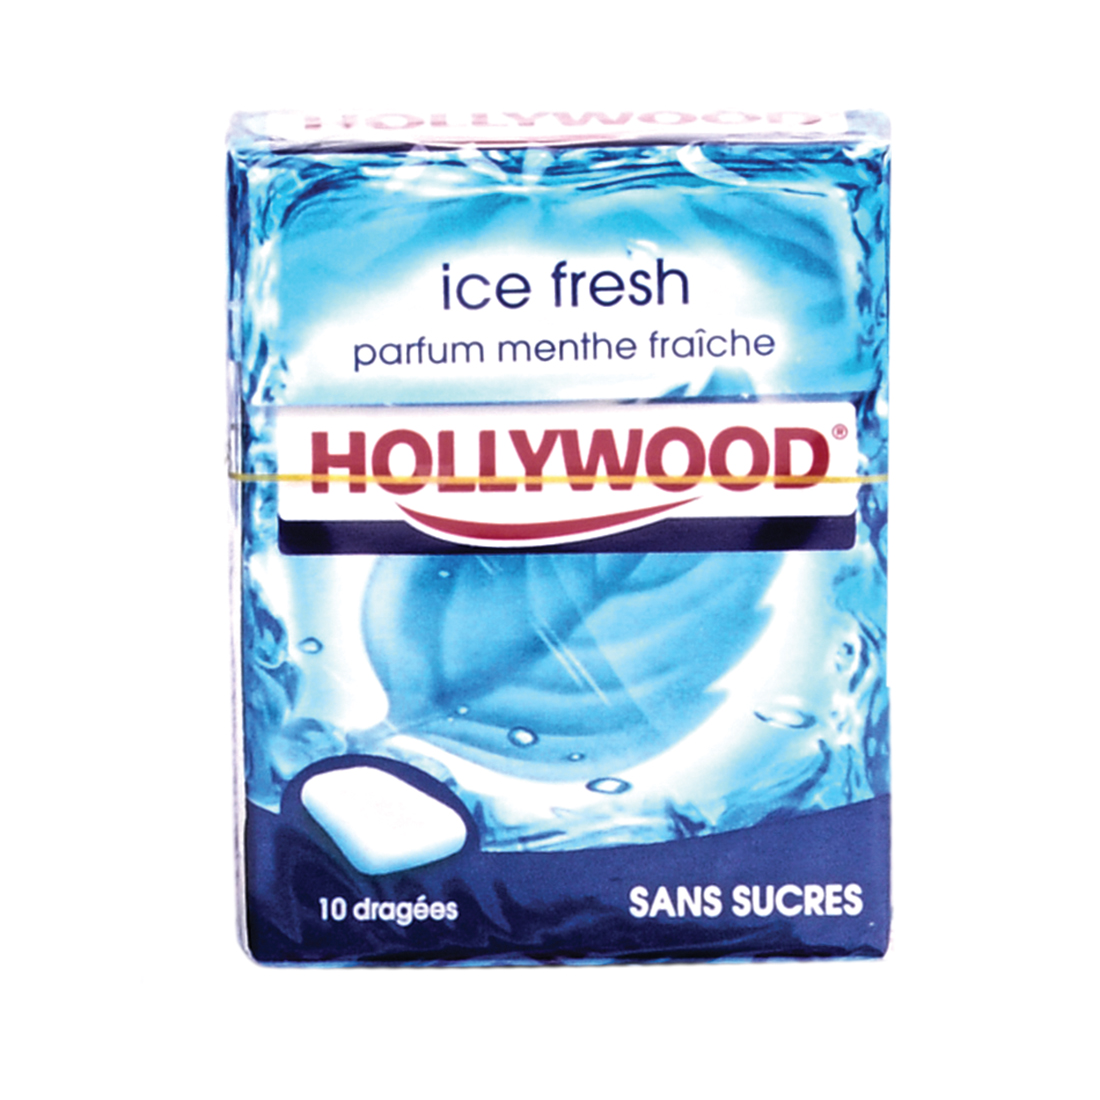 acheter chewing gum hollywood